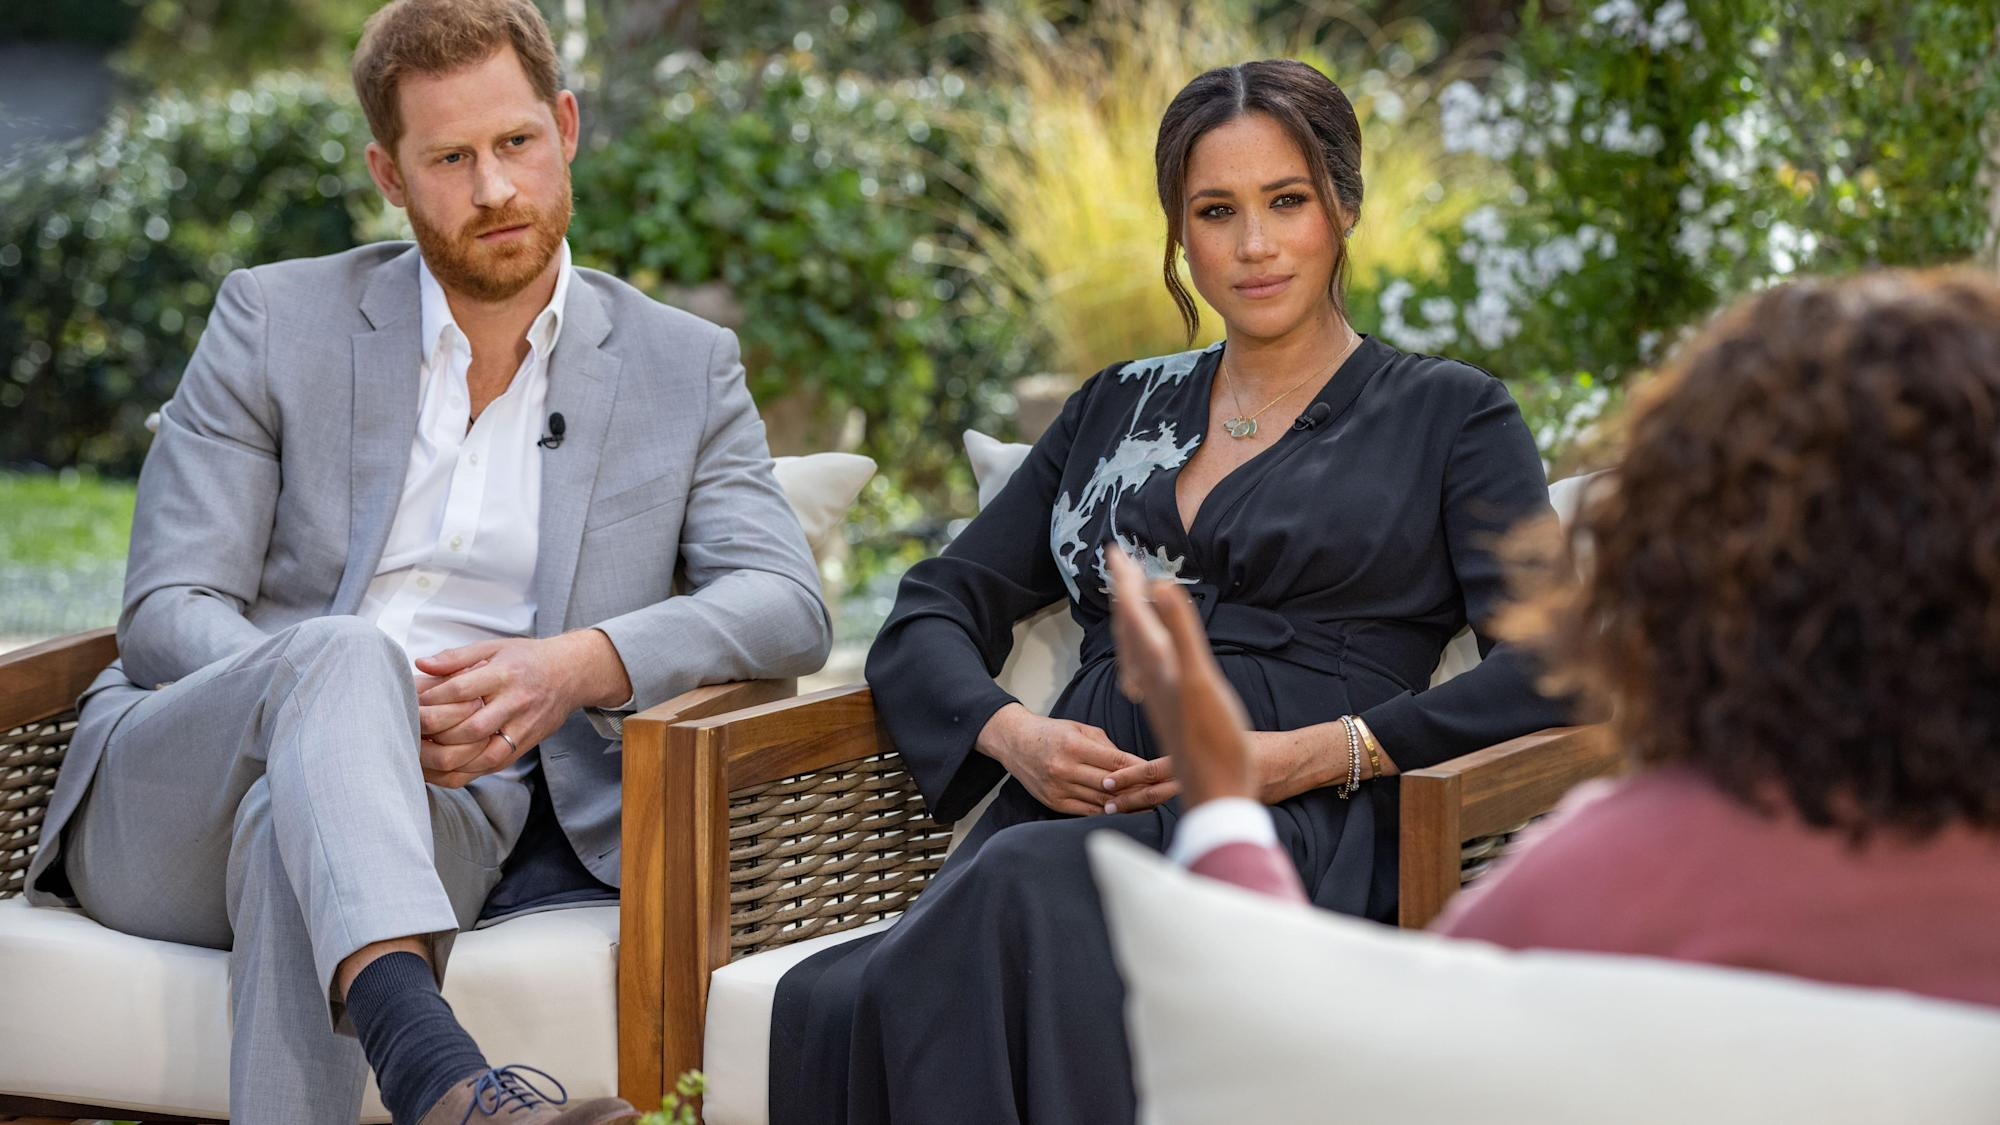 Racist comment about Archie's skin tone not made by Queen or Philip, Oprah says